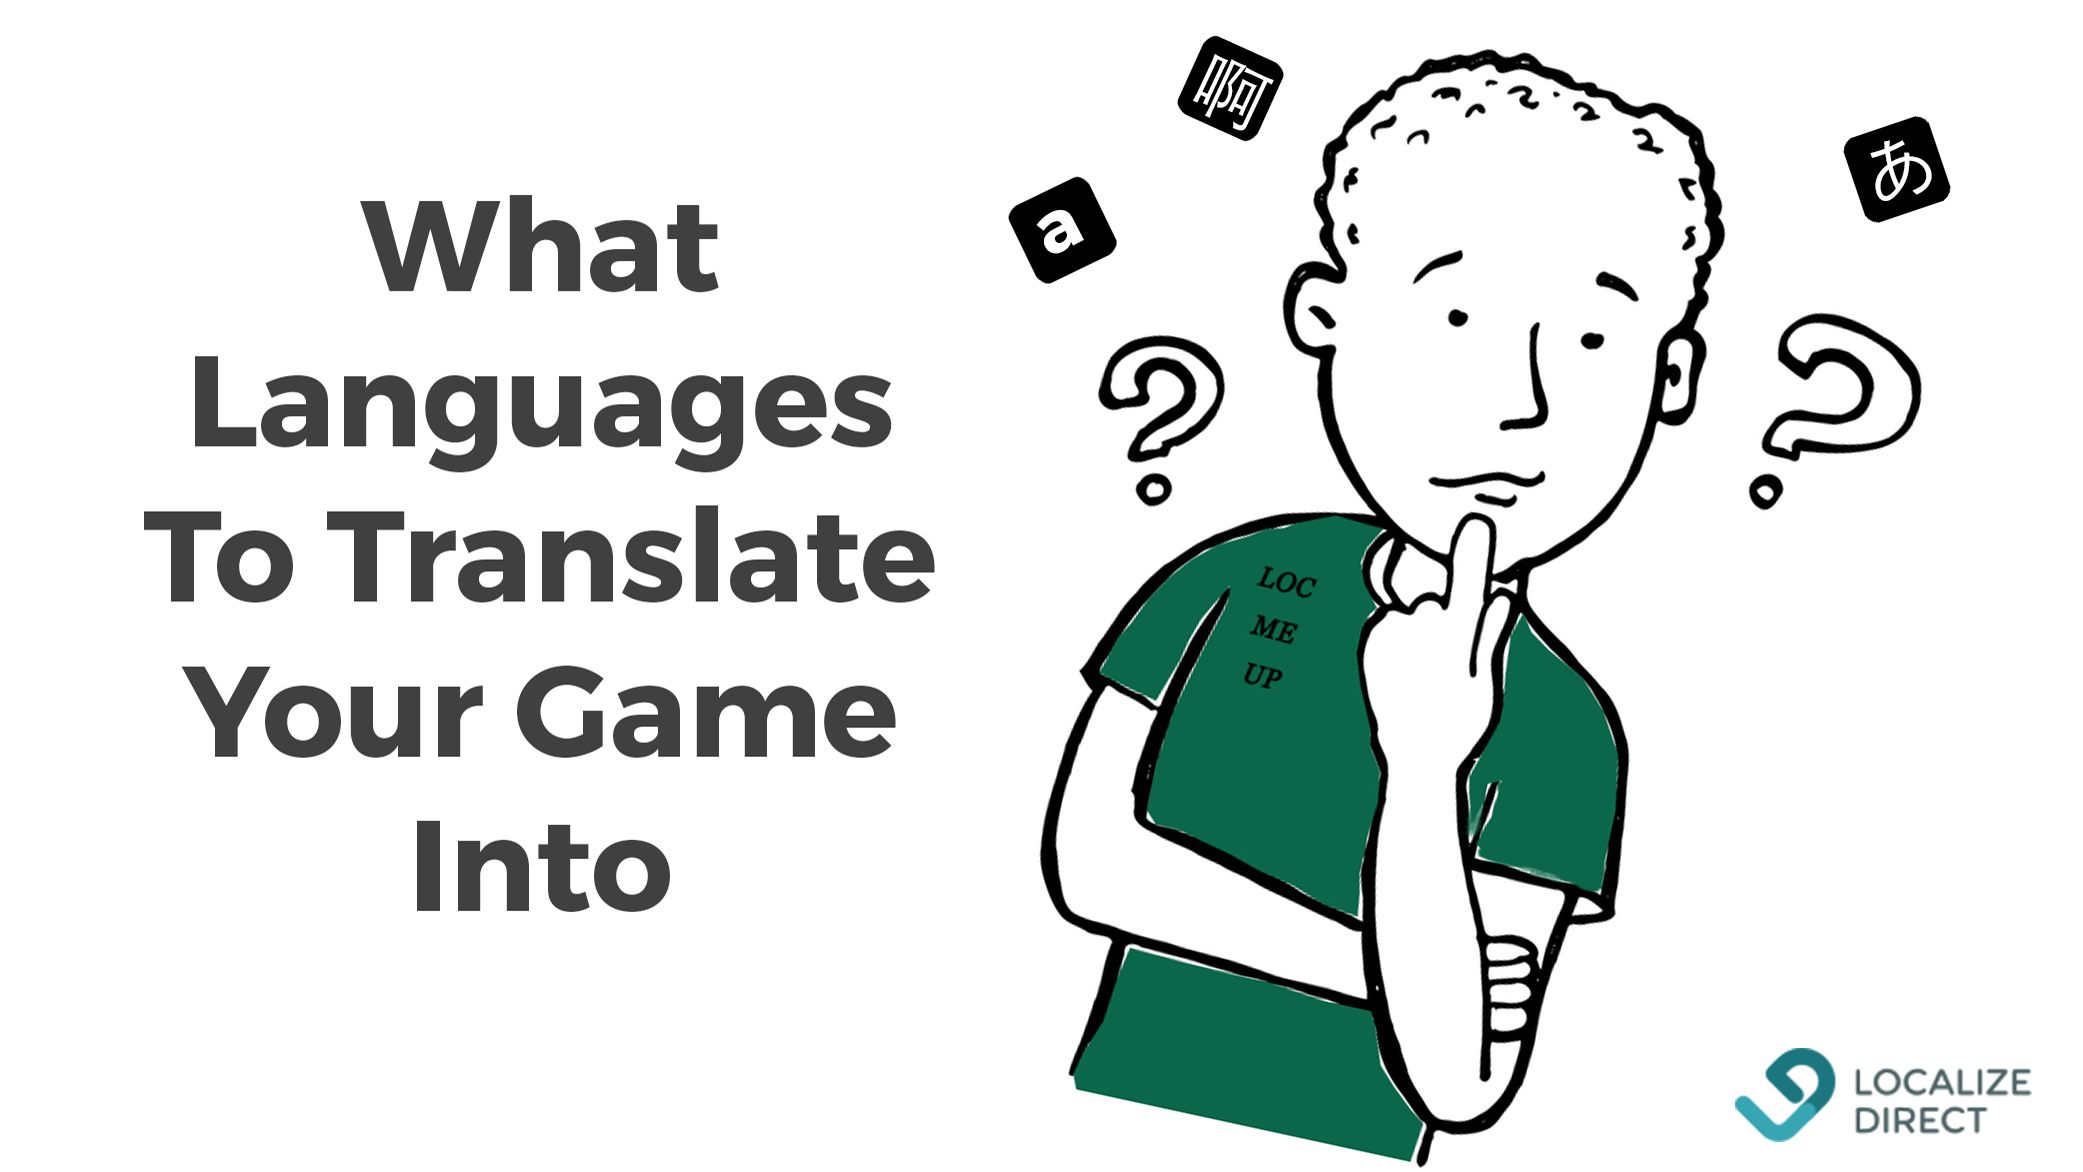 What Languages To Translate Your Game Into In 2019 (Trends & Insights)